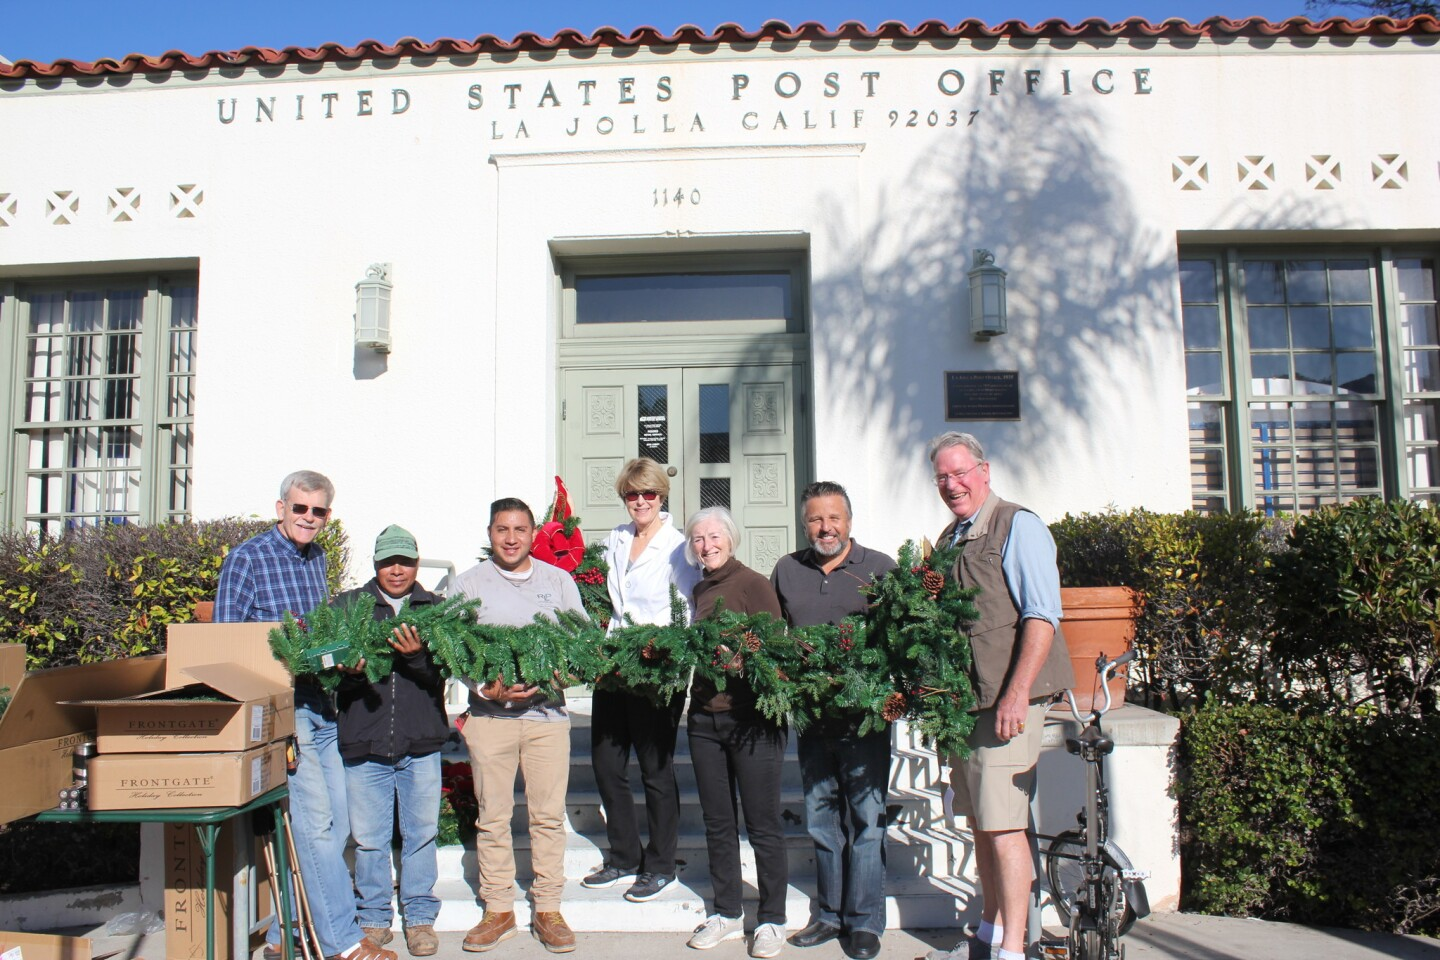 Volunteers Barry Bielinski, José Xinos, Israel Zea, Seonaid McArthur, Ann Craig, Raúl Albanez, John Peek hold the Christmas decorations for the La Jolla Post Office building.